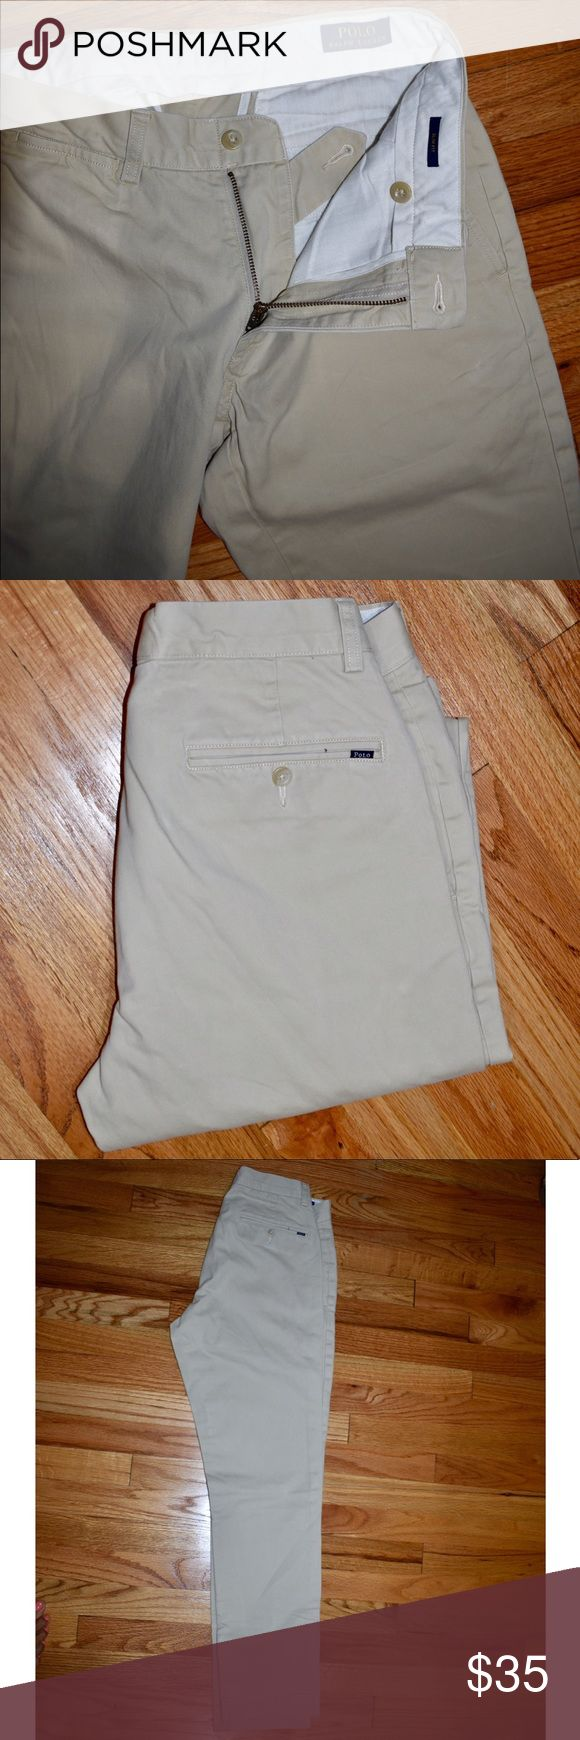 Ralph Lauren Men's Slim Fit Khaki Pants BRAND NEW CONDITION!!! Size 30 x 32. Make an offer! Polo by Ralph Lauren Pants Chinos & Khakis